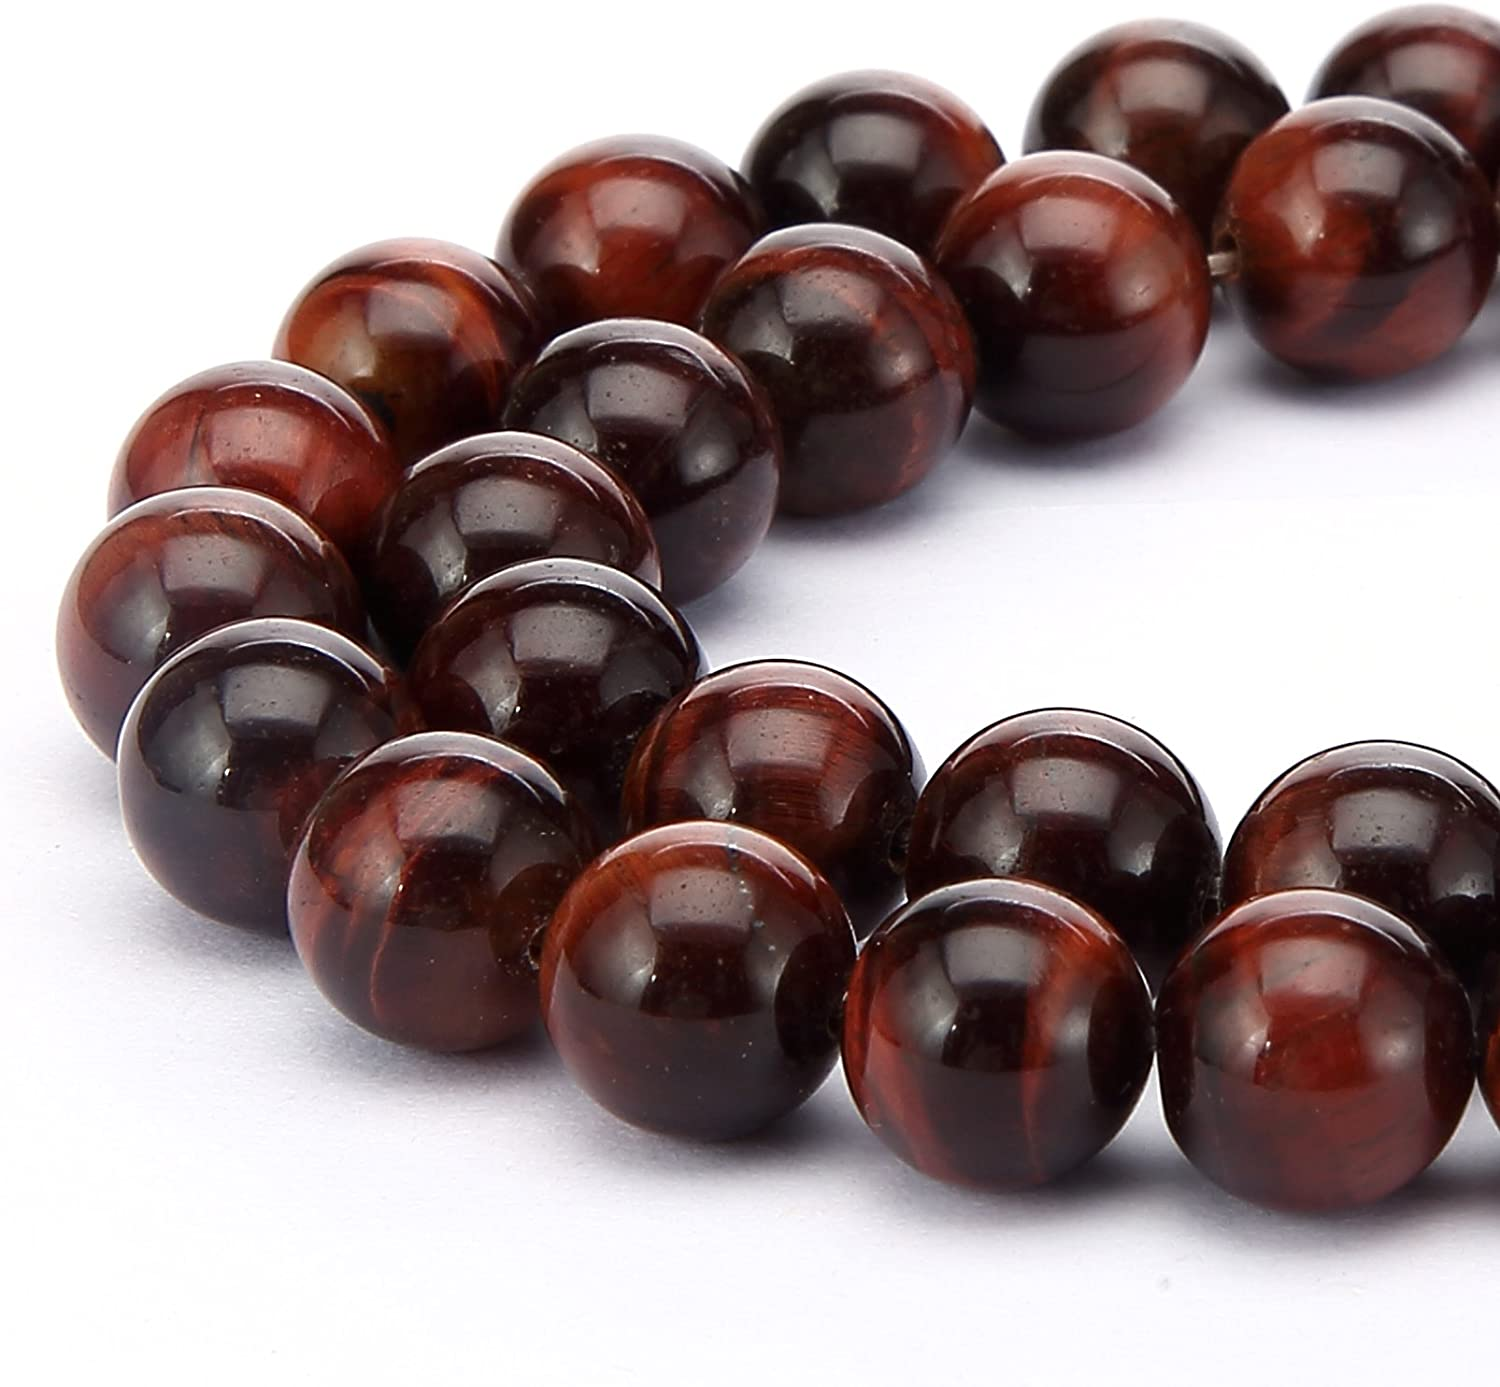 BRCbeads Gorgeous Natural Red Fire Agate Gemstone Round Loose Beads 4mm Approxi 15.5 inch 88pcs 1 Strand per Bag for Jewelry Making